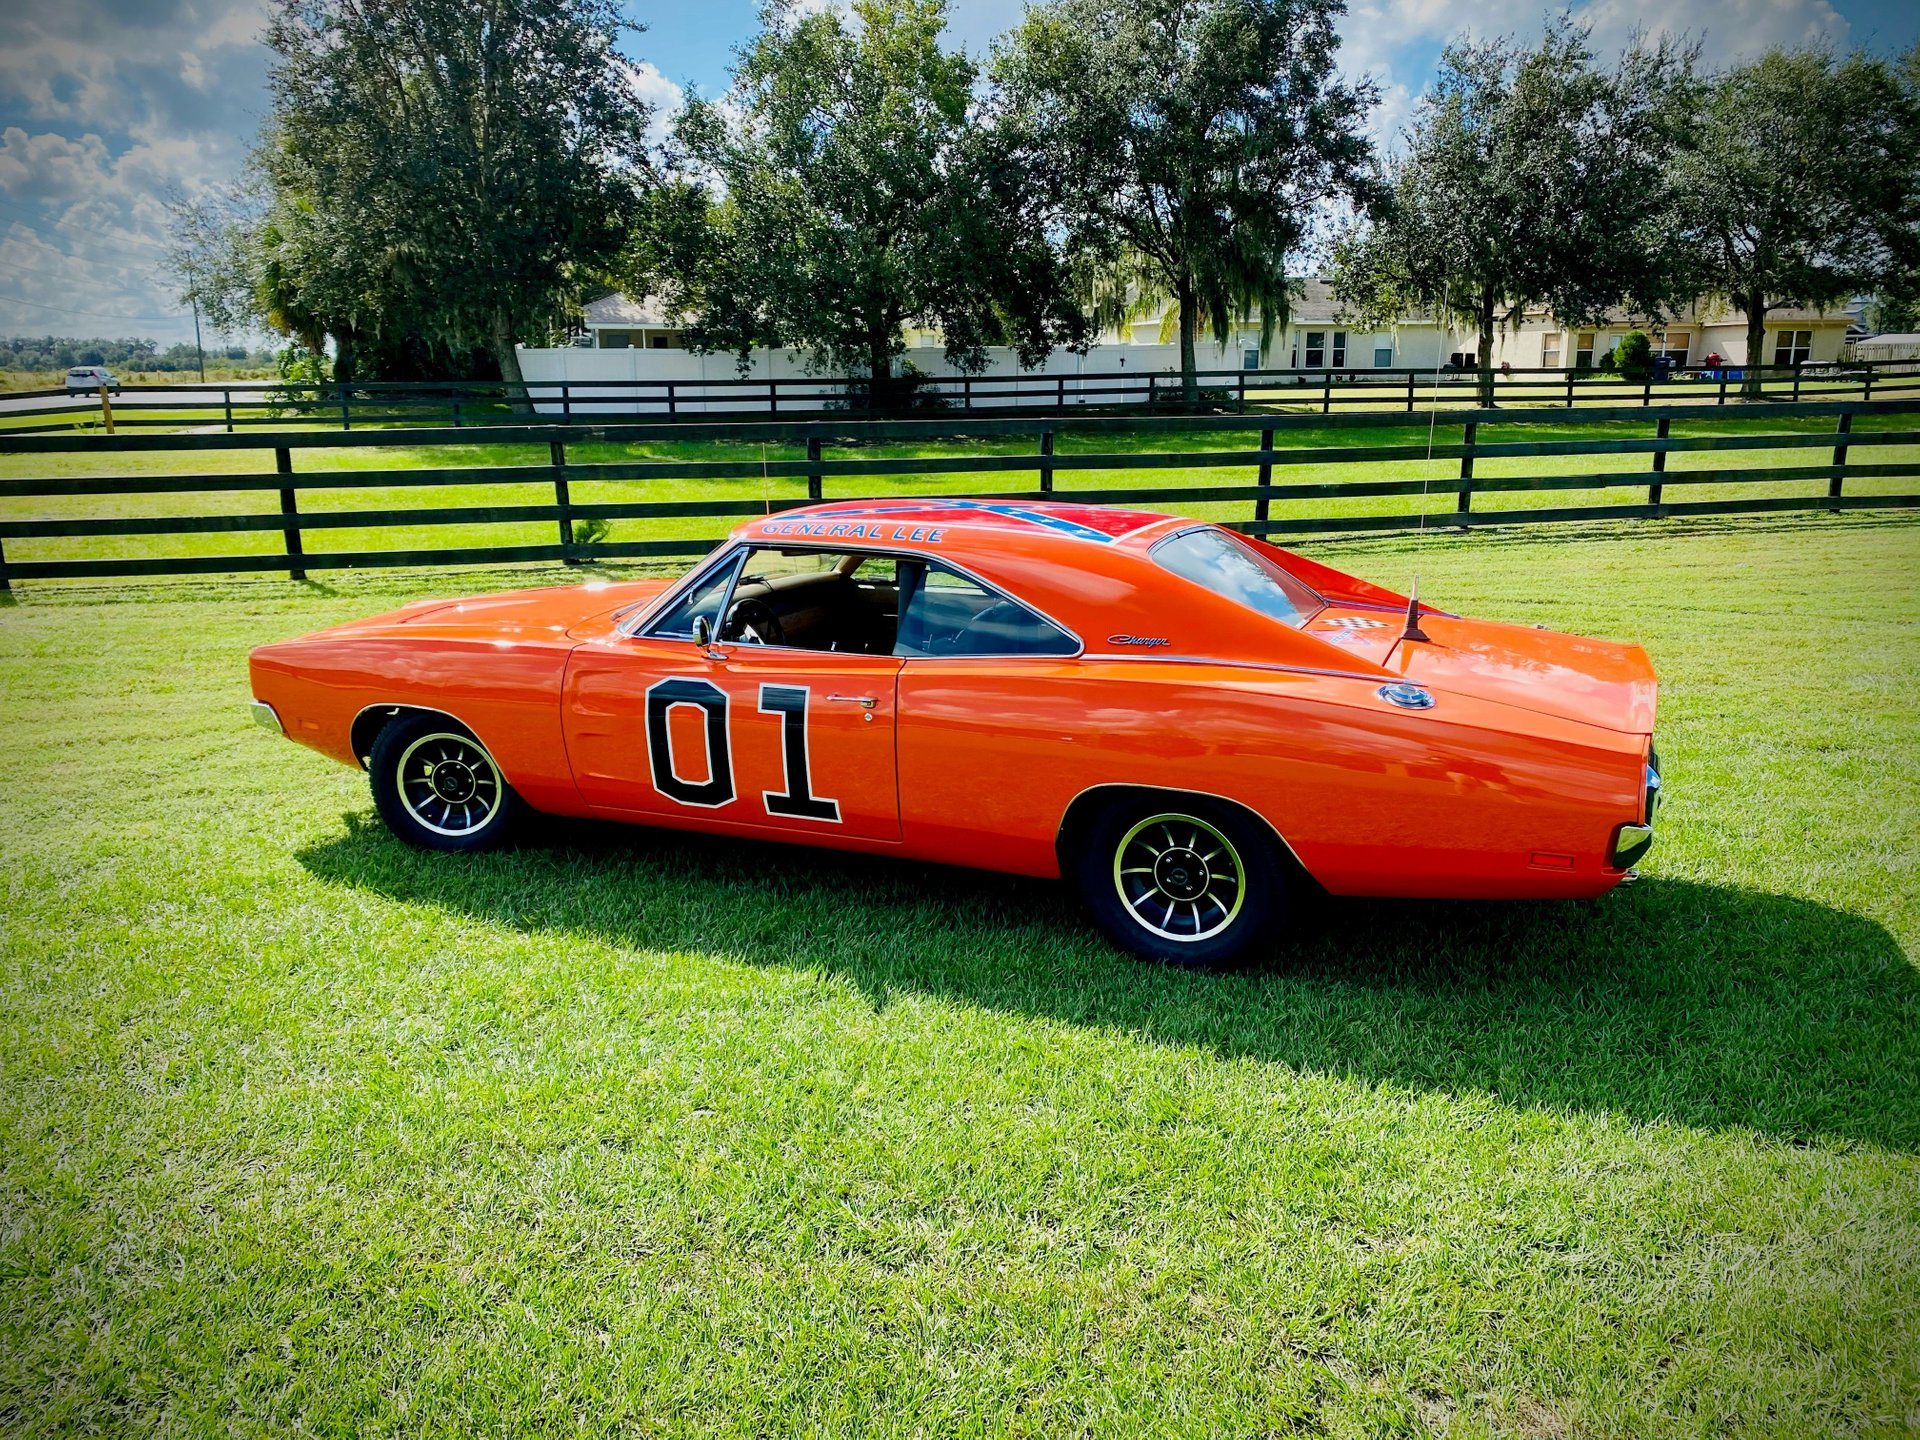 1969 dodge charger r t replica of dukes of hazard general lee